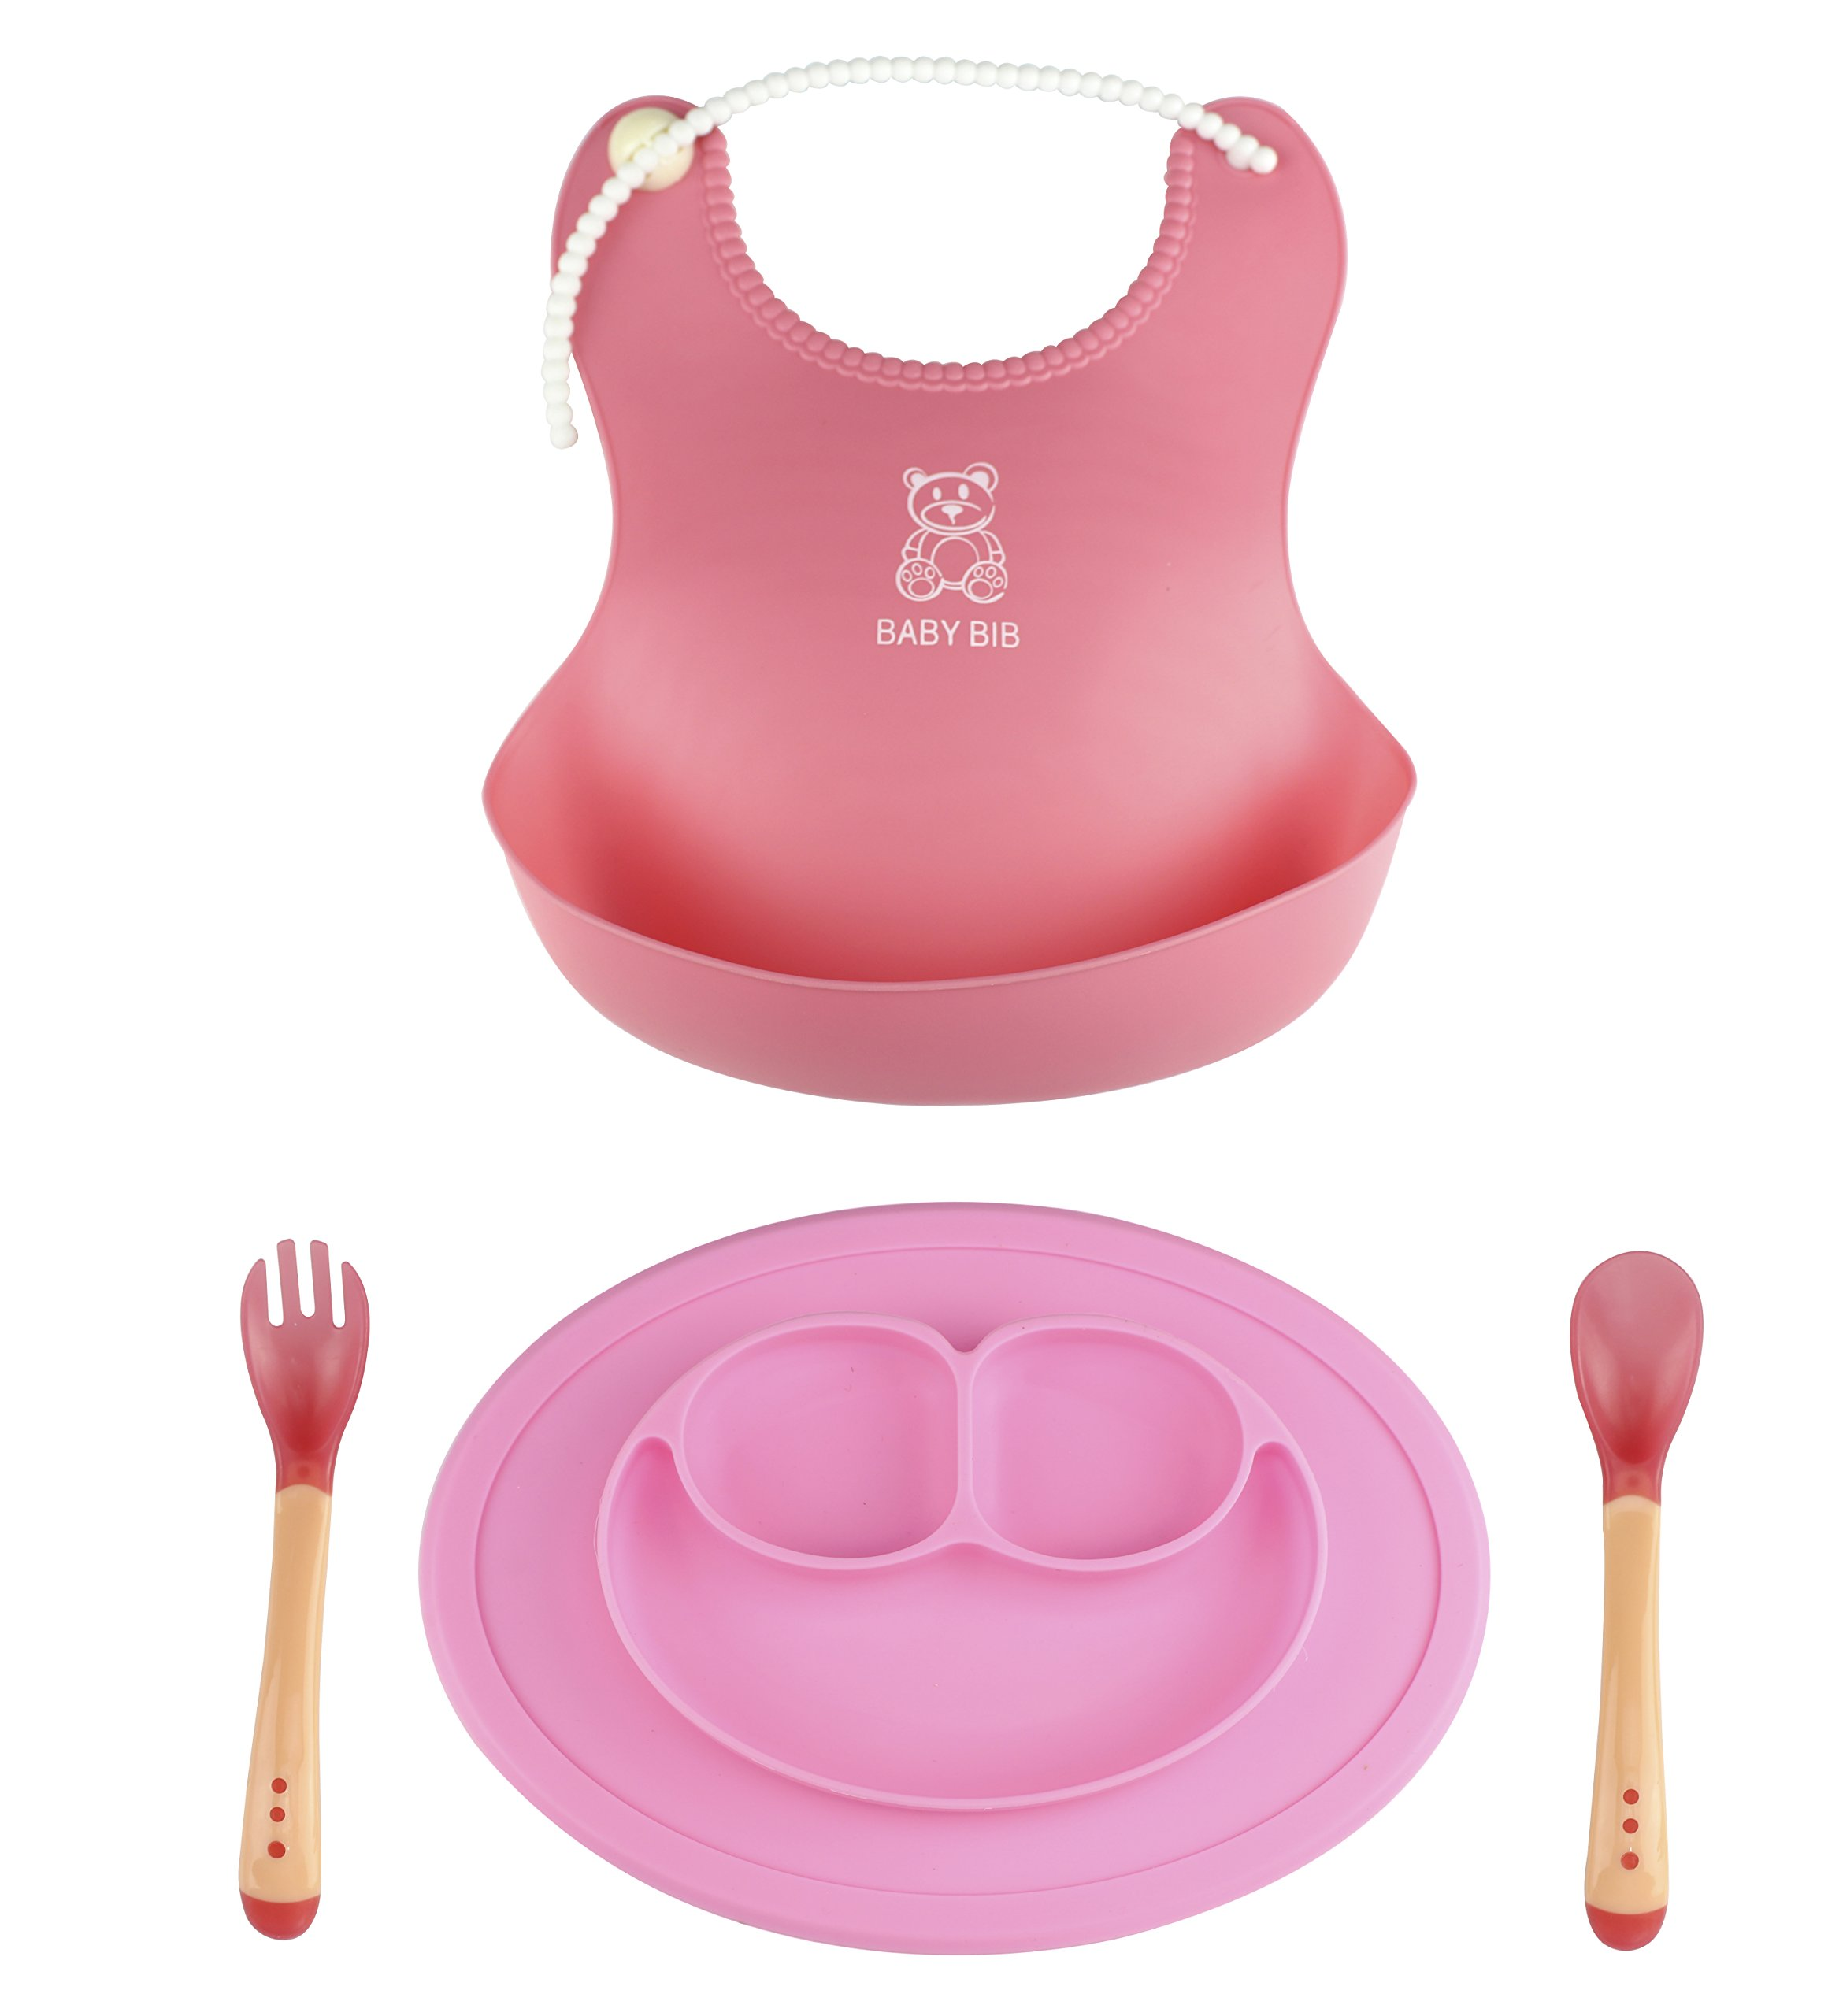 Pink Baby Silicone Placemat Bowl Spoon Fork Plate Bib Set Safe for Children Kid Toddler Breakfast Lunch Dinner Fit Most Highchair Feeding Tray Dining Table Kitchen by Baby plate fork spoon